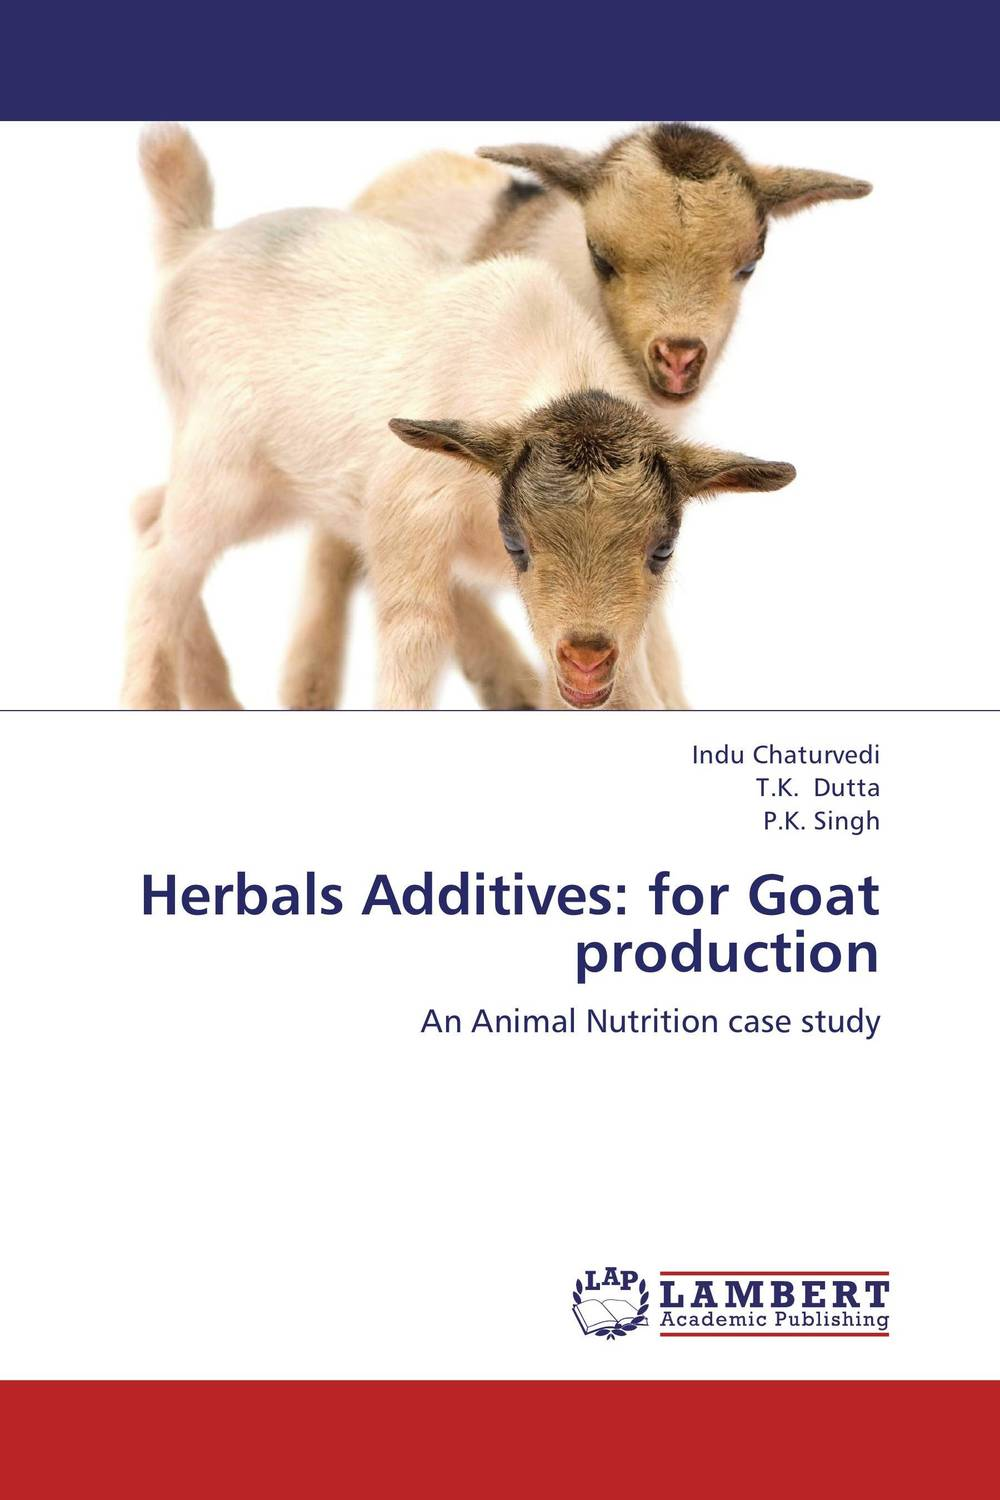 Herbals Additives: for Goat production